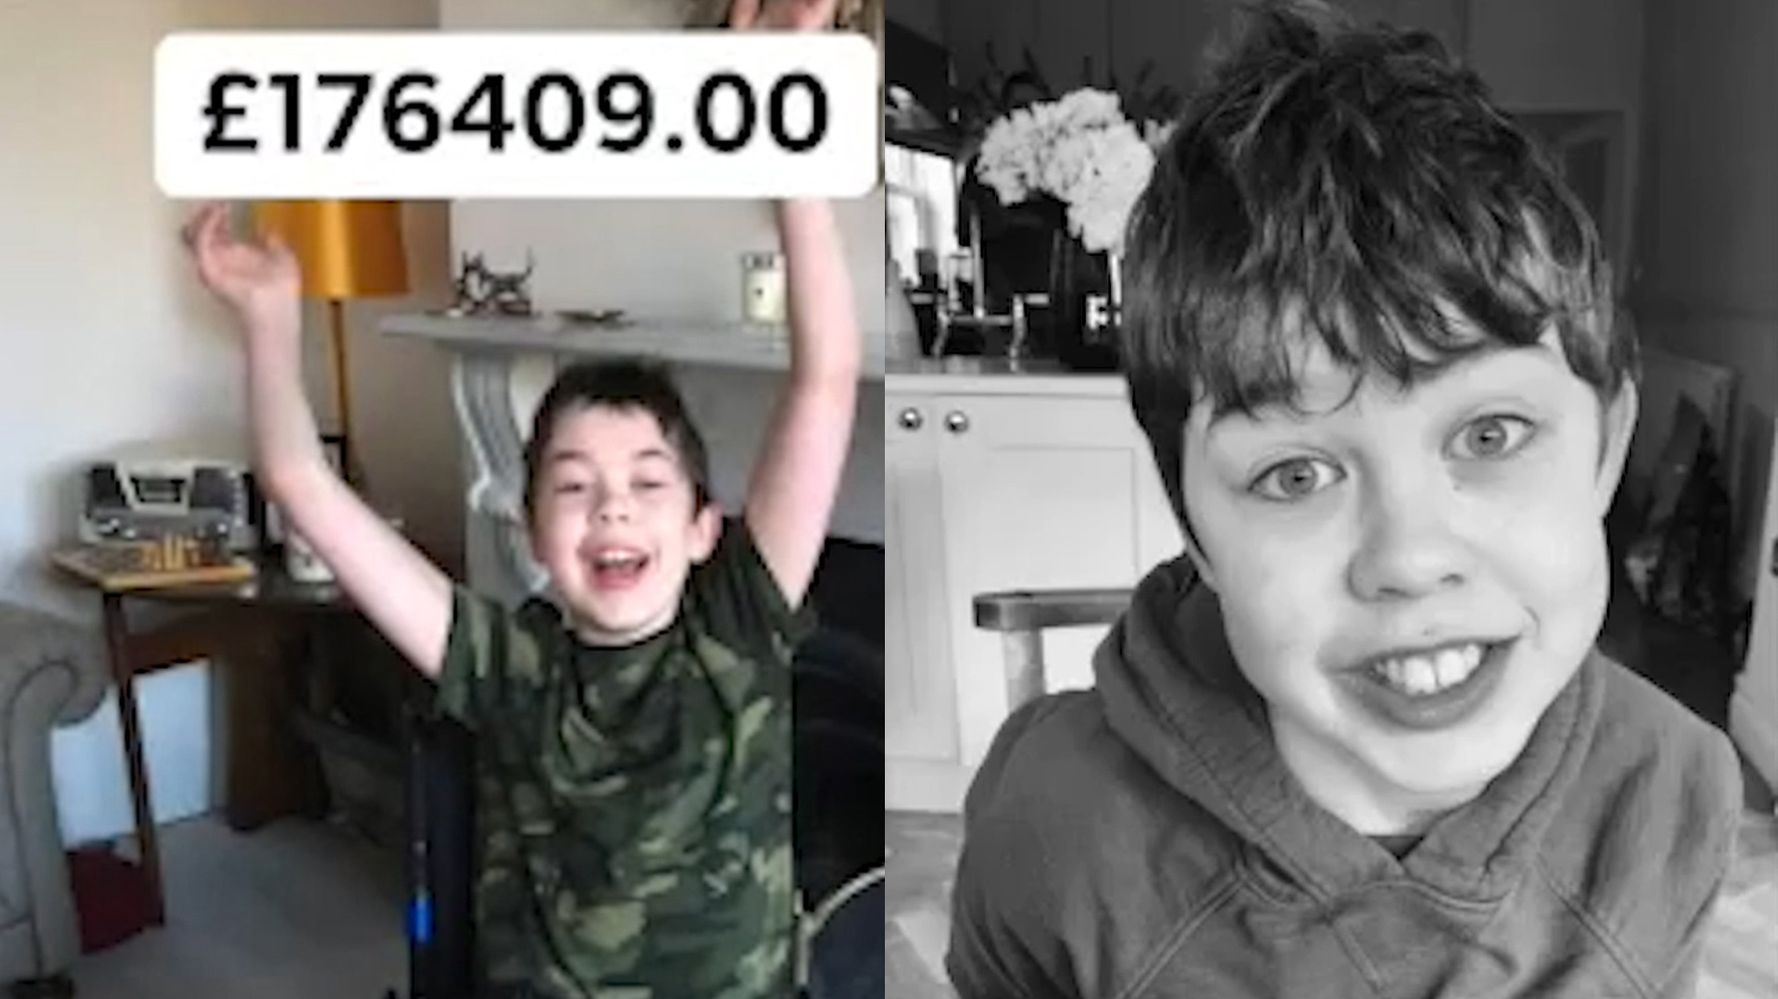 A Minute Of Kindness: Boy Raises Over £170,000 To Save Activity Centre